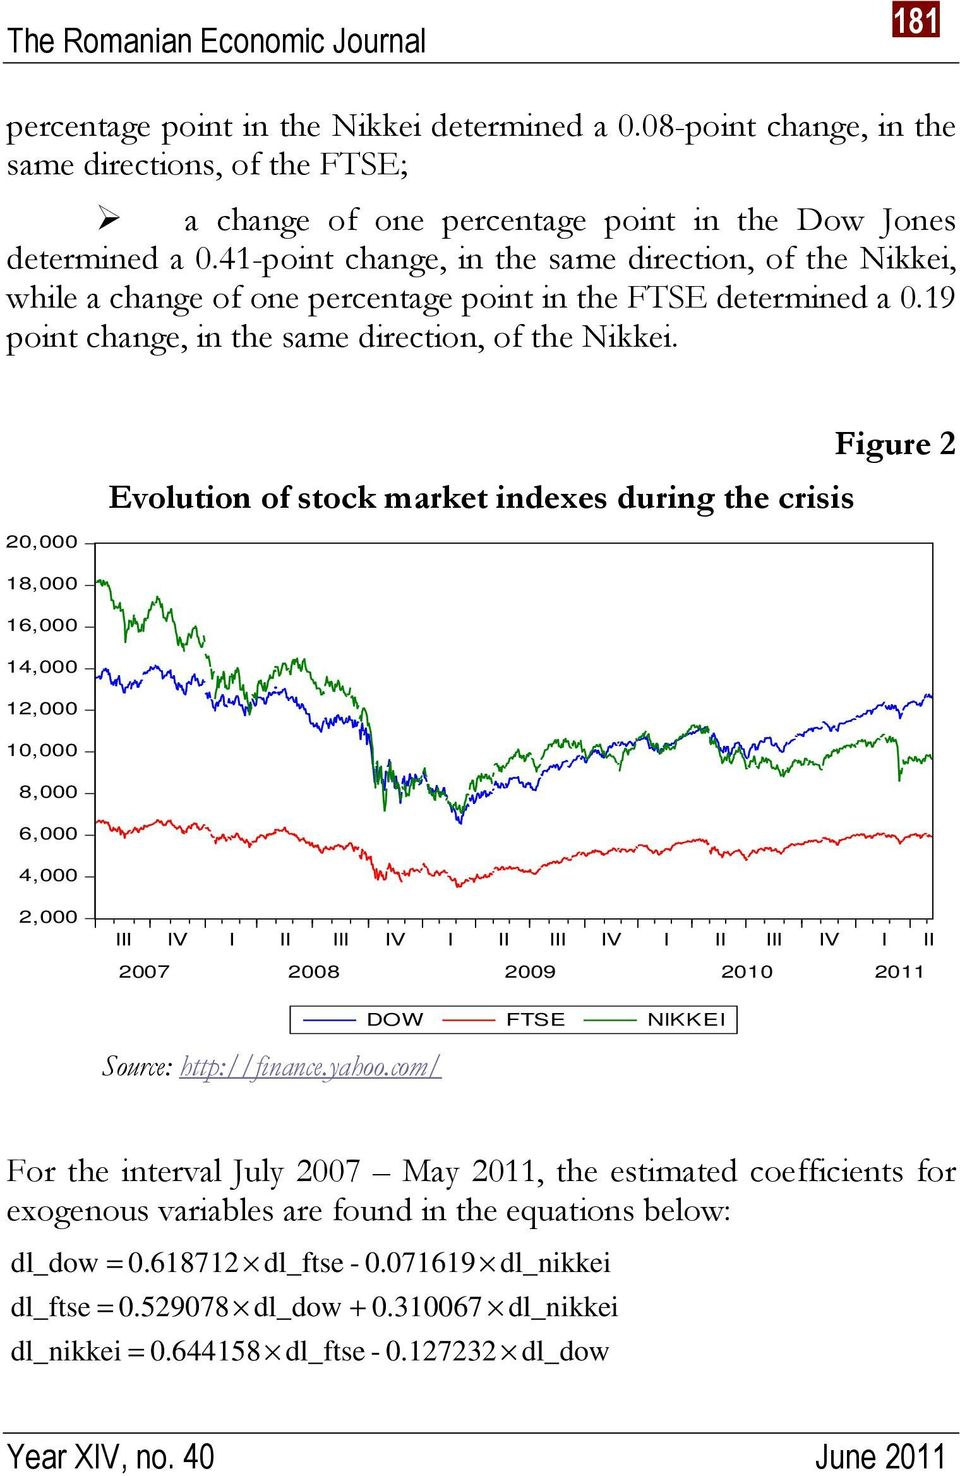 20,000 Evolution of stock market indexes during the crisis Figure 2 18,000 16,000 14,000 12,000 10,000 8,000 6,000 4,000 2,000 III IV I II III IV I II III IV I II III IV I II 2007 2008 2009 2010 2011